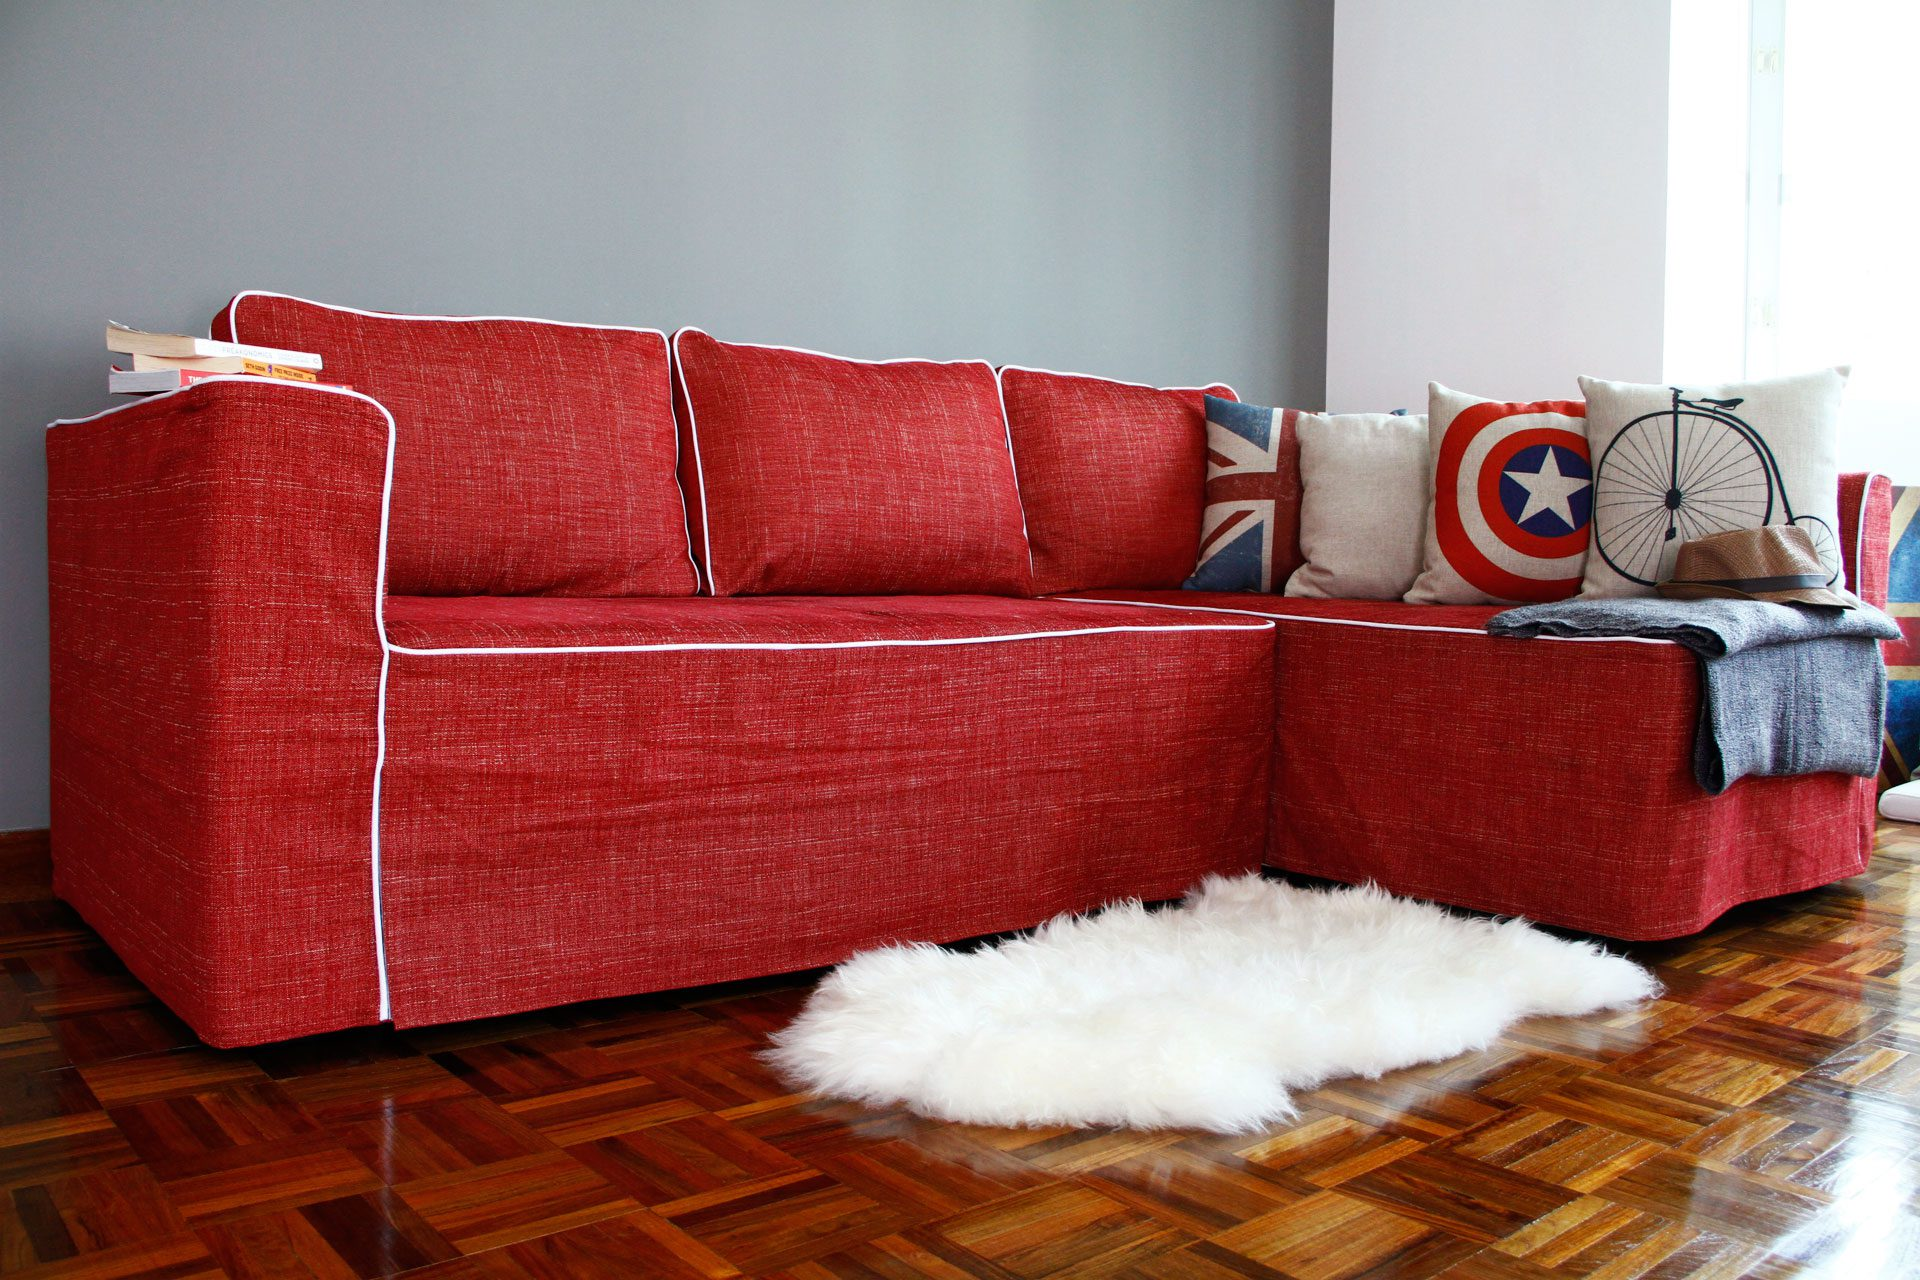 Manstad Basic Fit & Custom Contrast Piping Design Ideas on Sofas